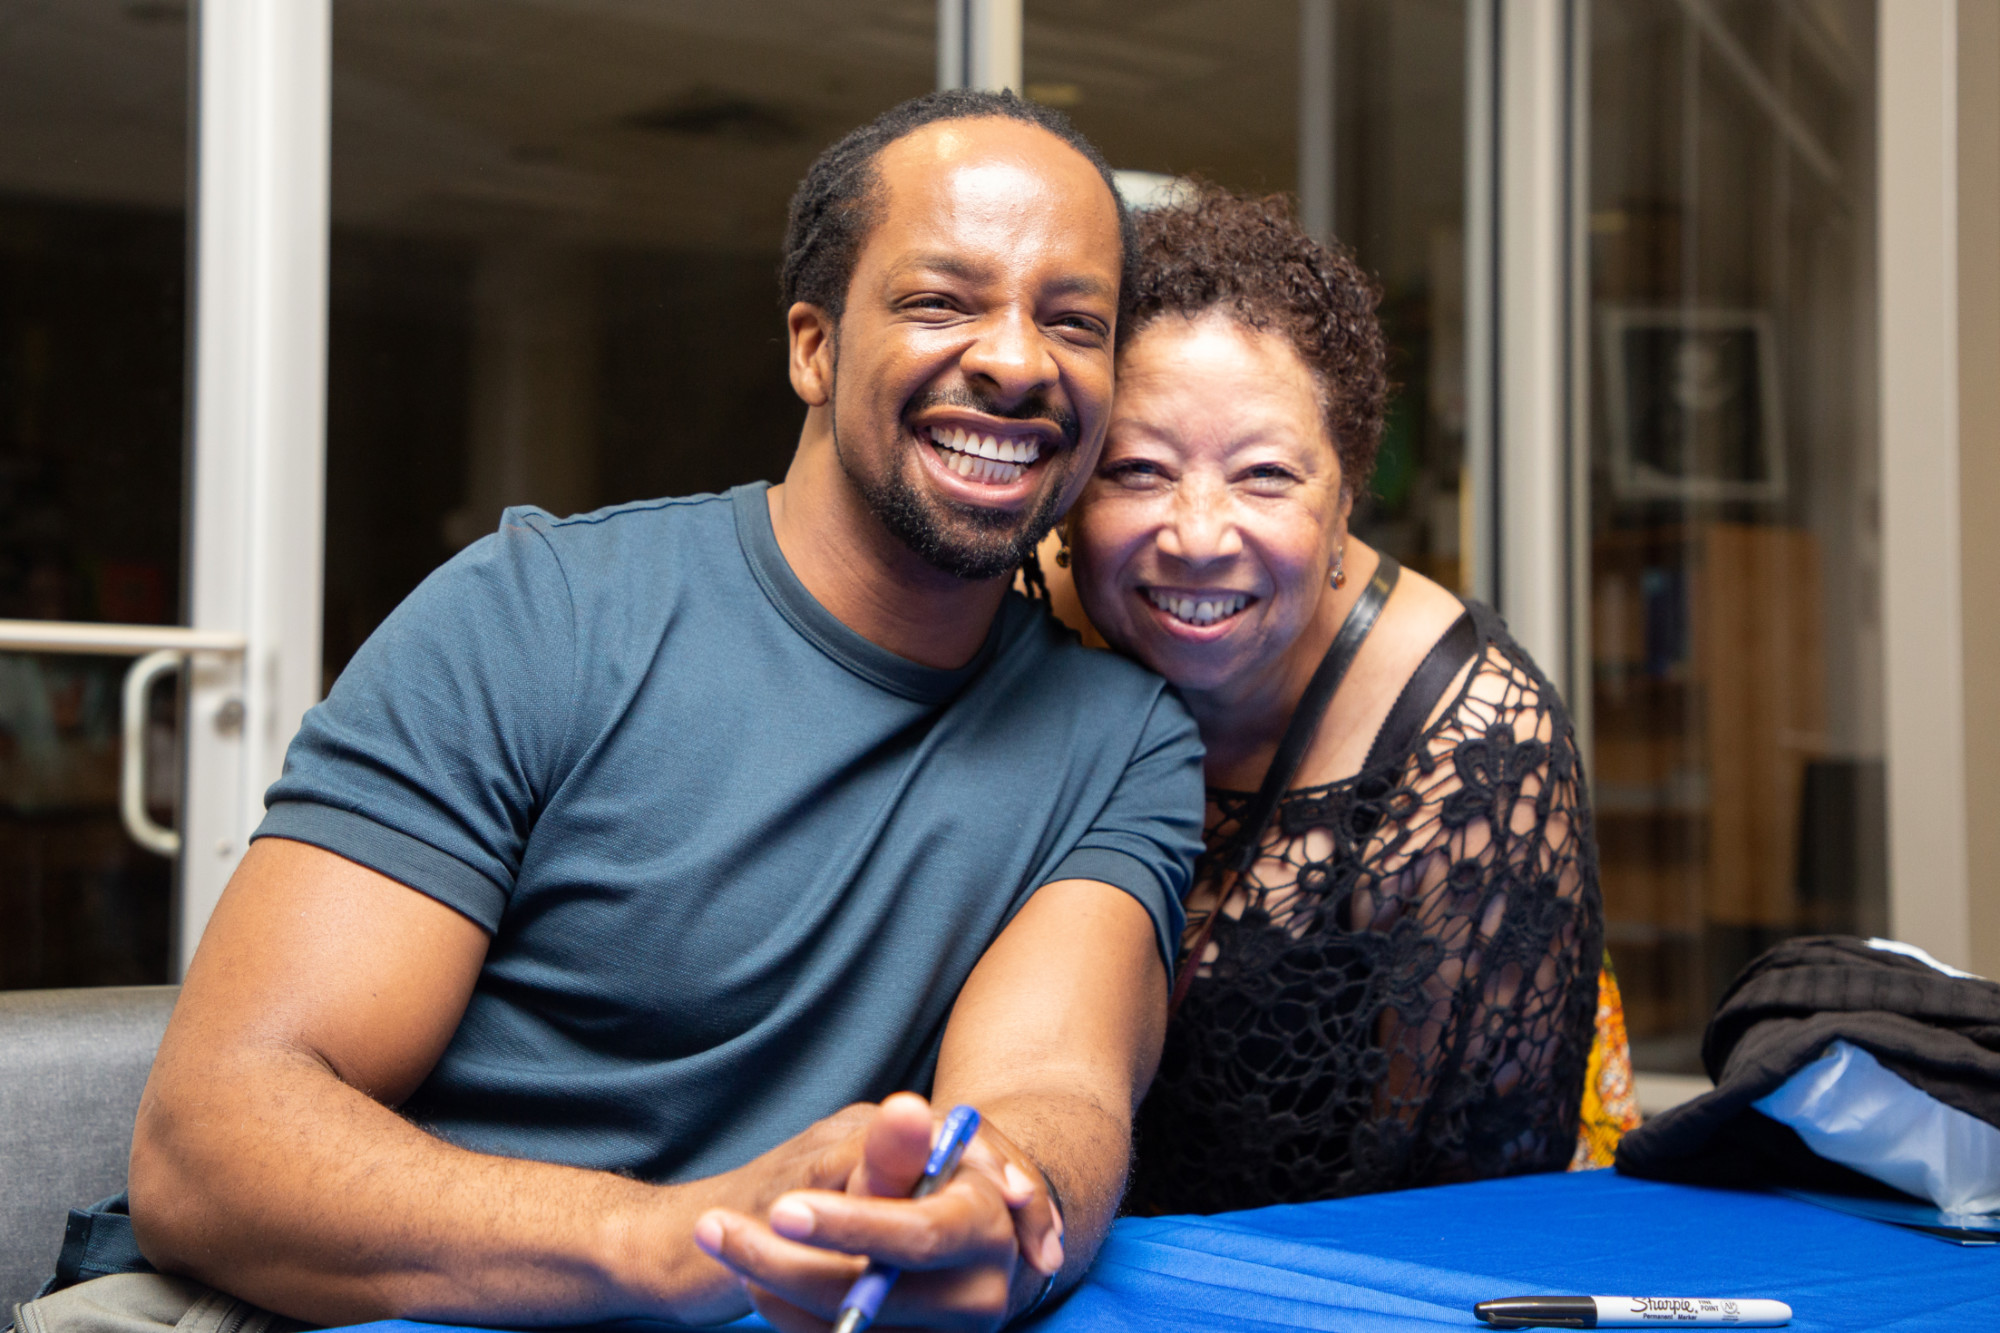 Dillard alumnus Jericho Brown and his former poetry professor Mona Lisa Saloy